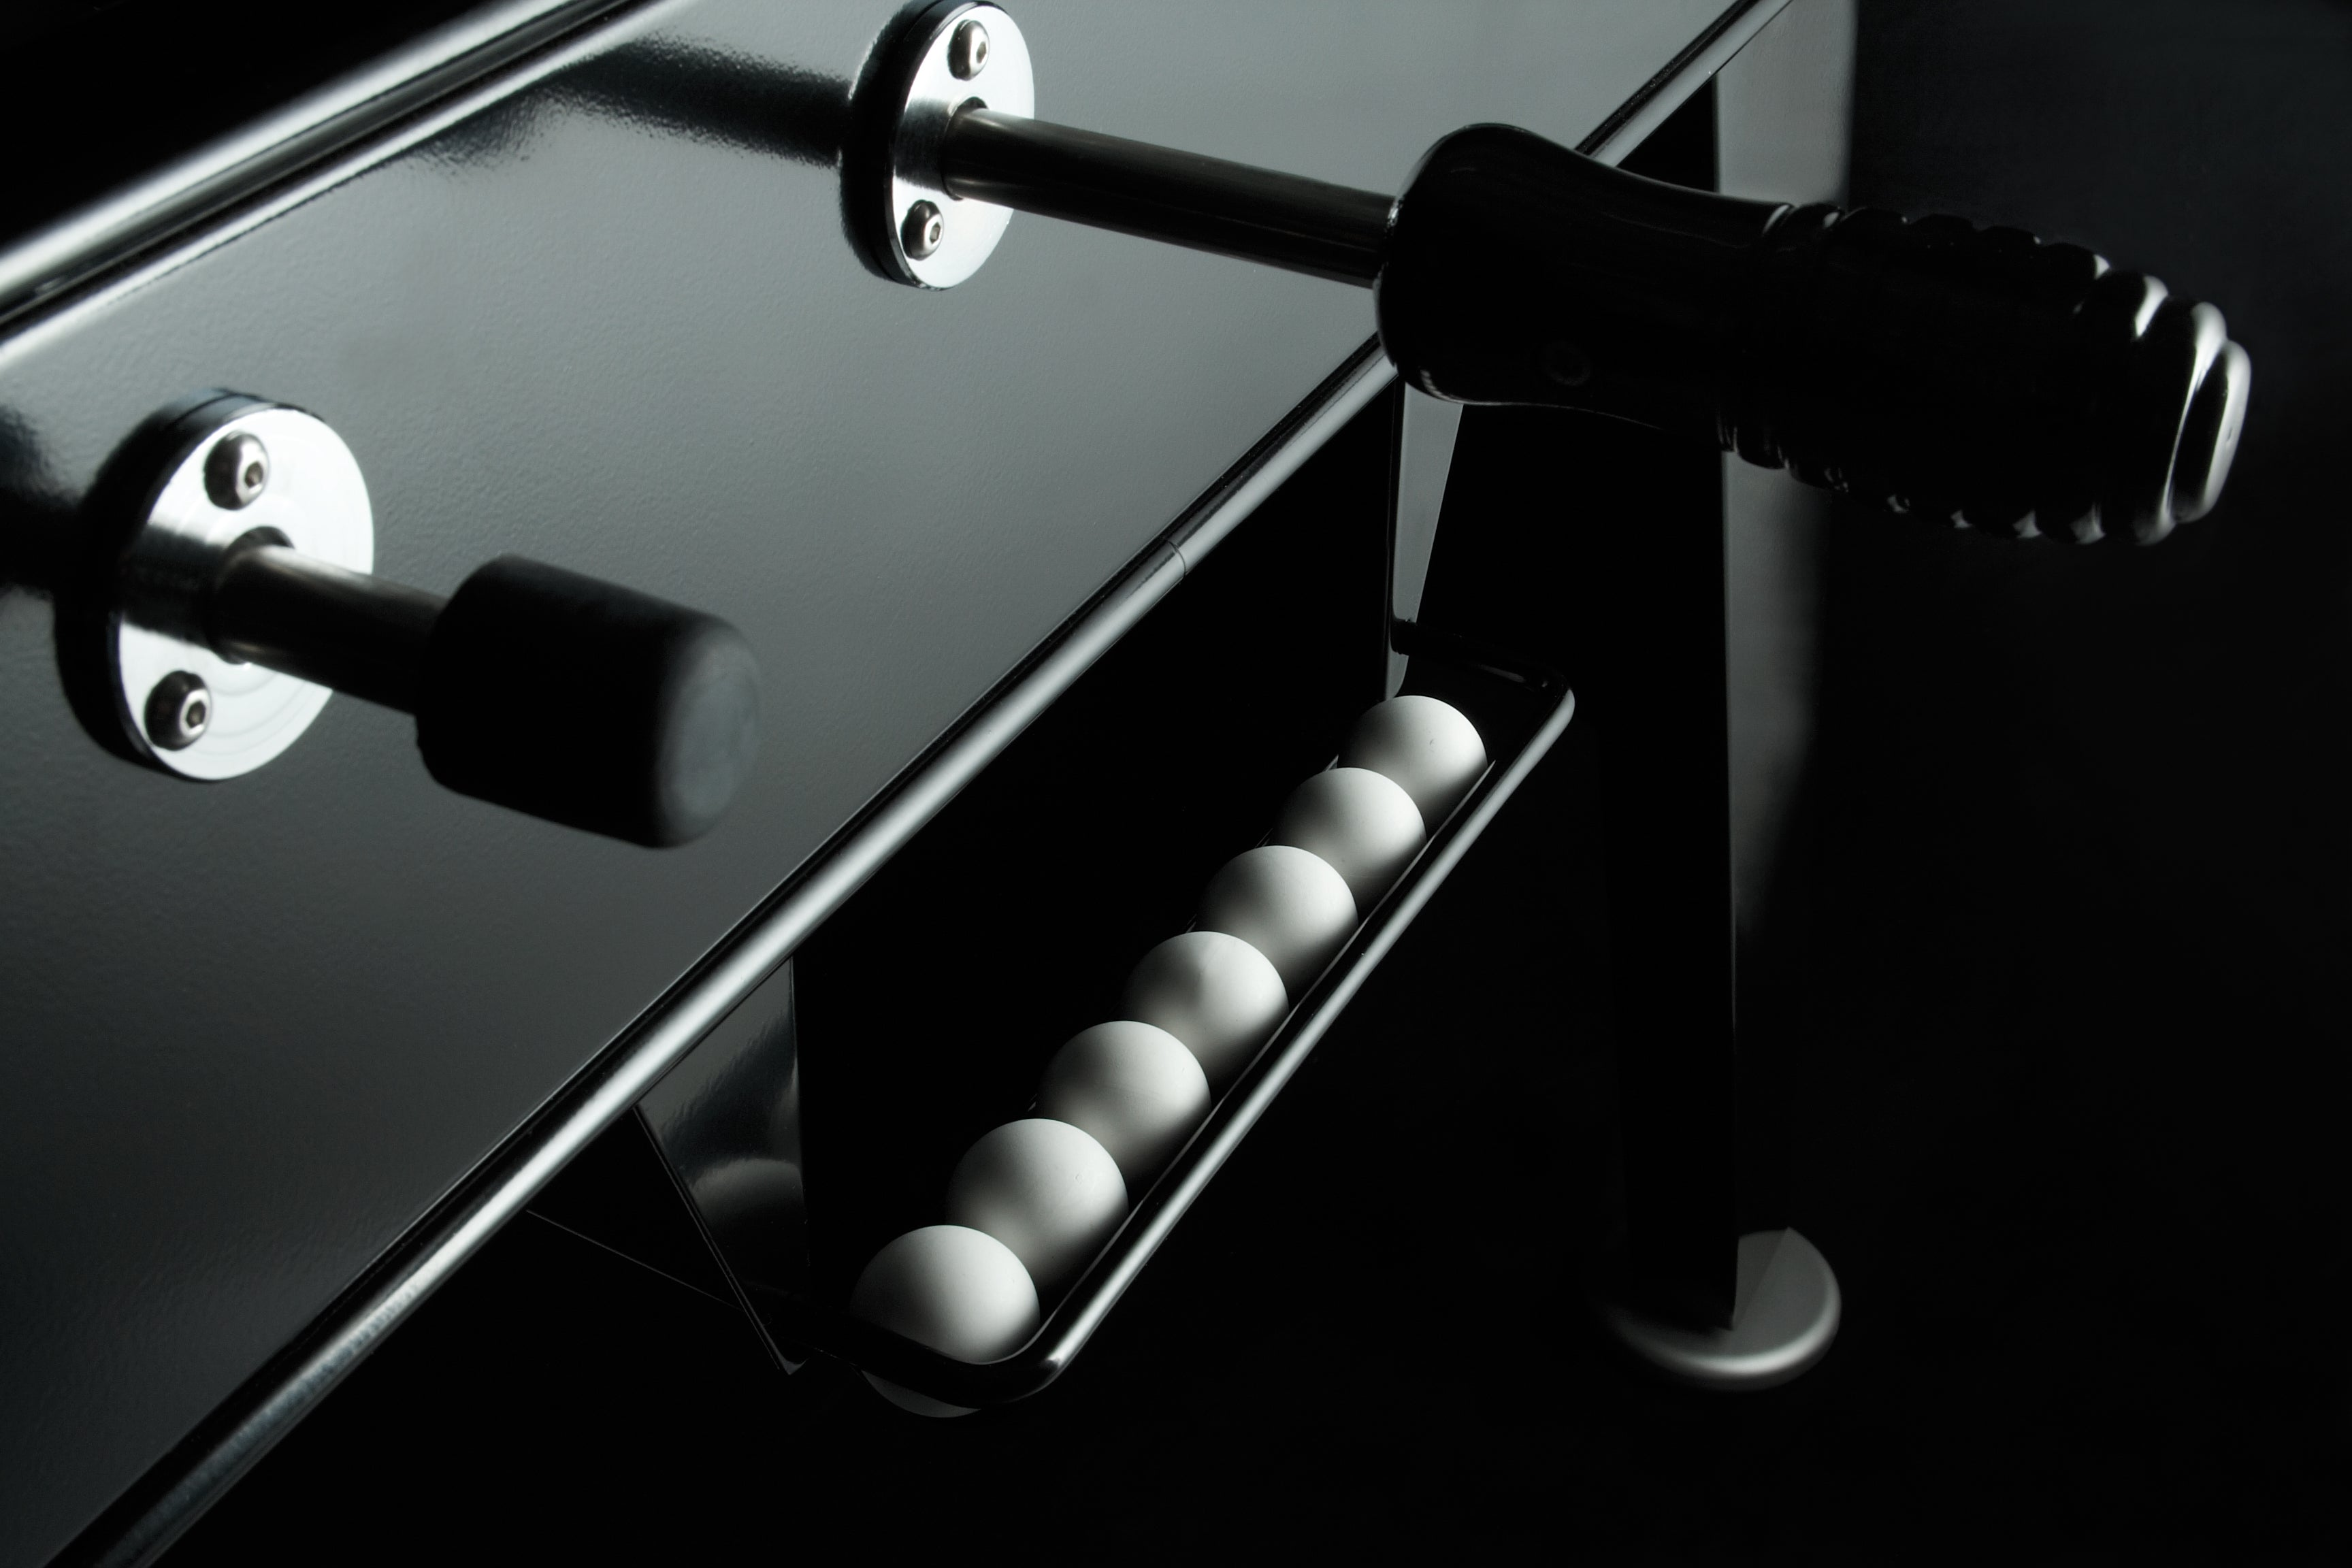 RS Barcelona #2 Metal Foosball (indoor/outdoor) - Blatt Billiards